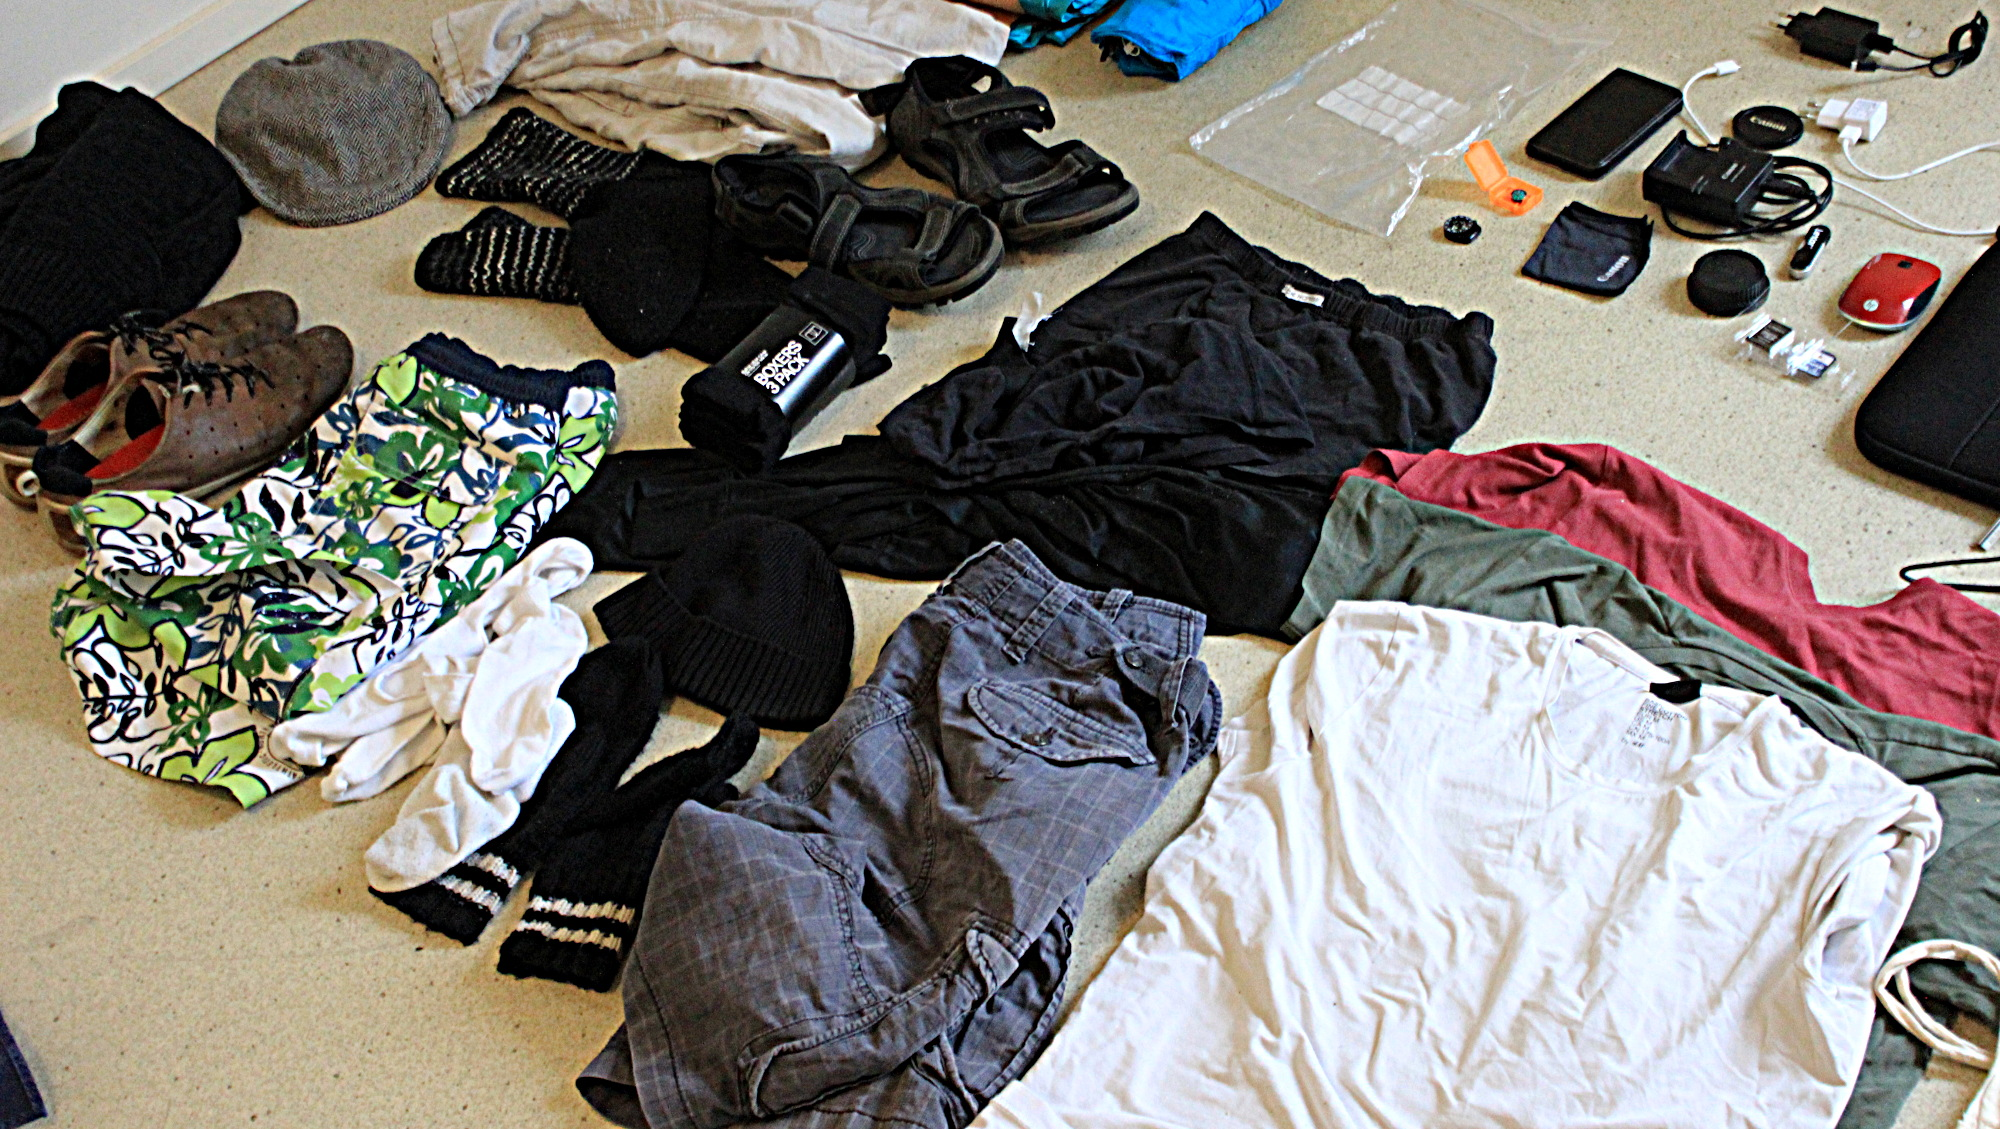 Round the world packing list. Clothes for a trip around the world spread on the floor.